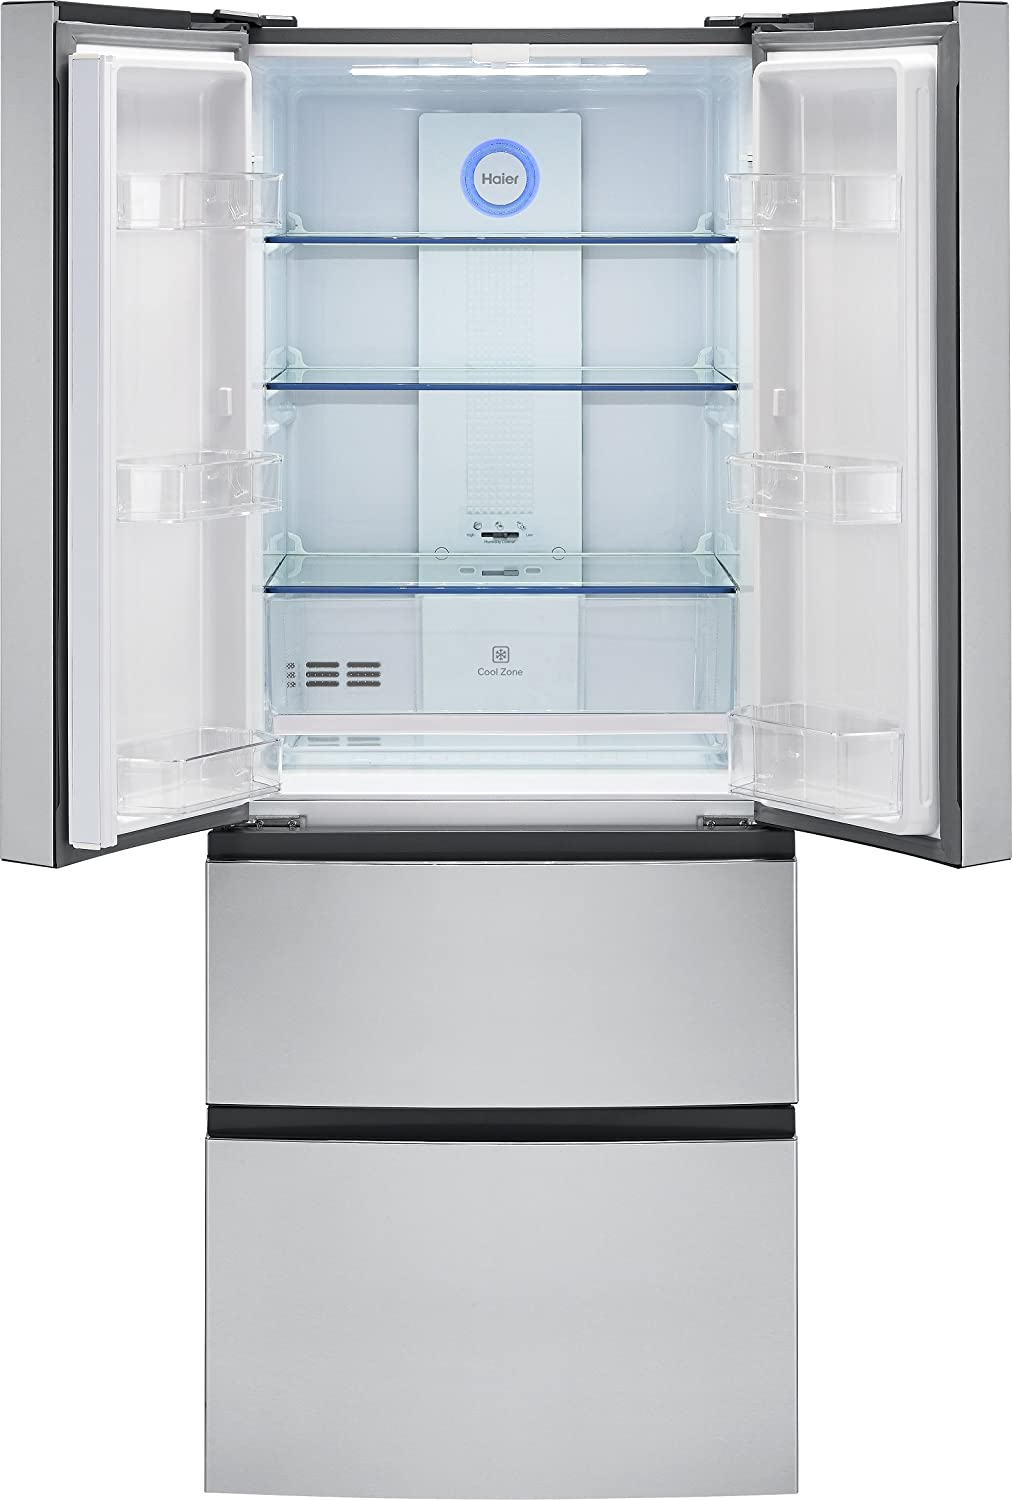 Amazon haier 15 cu ft french door refrigerator 28 width ft french door refrigerator 28 width stainless steel hrf15n3ags appliances rubansaba